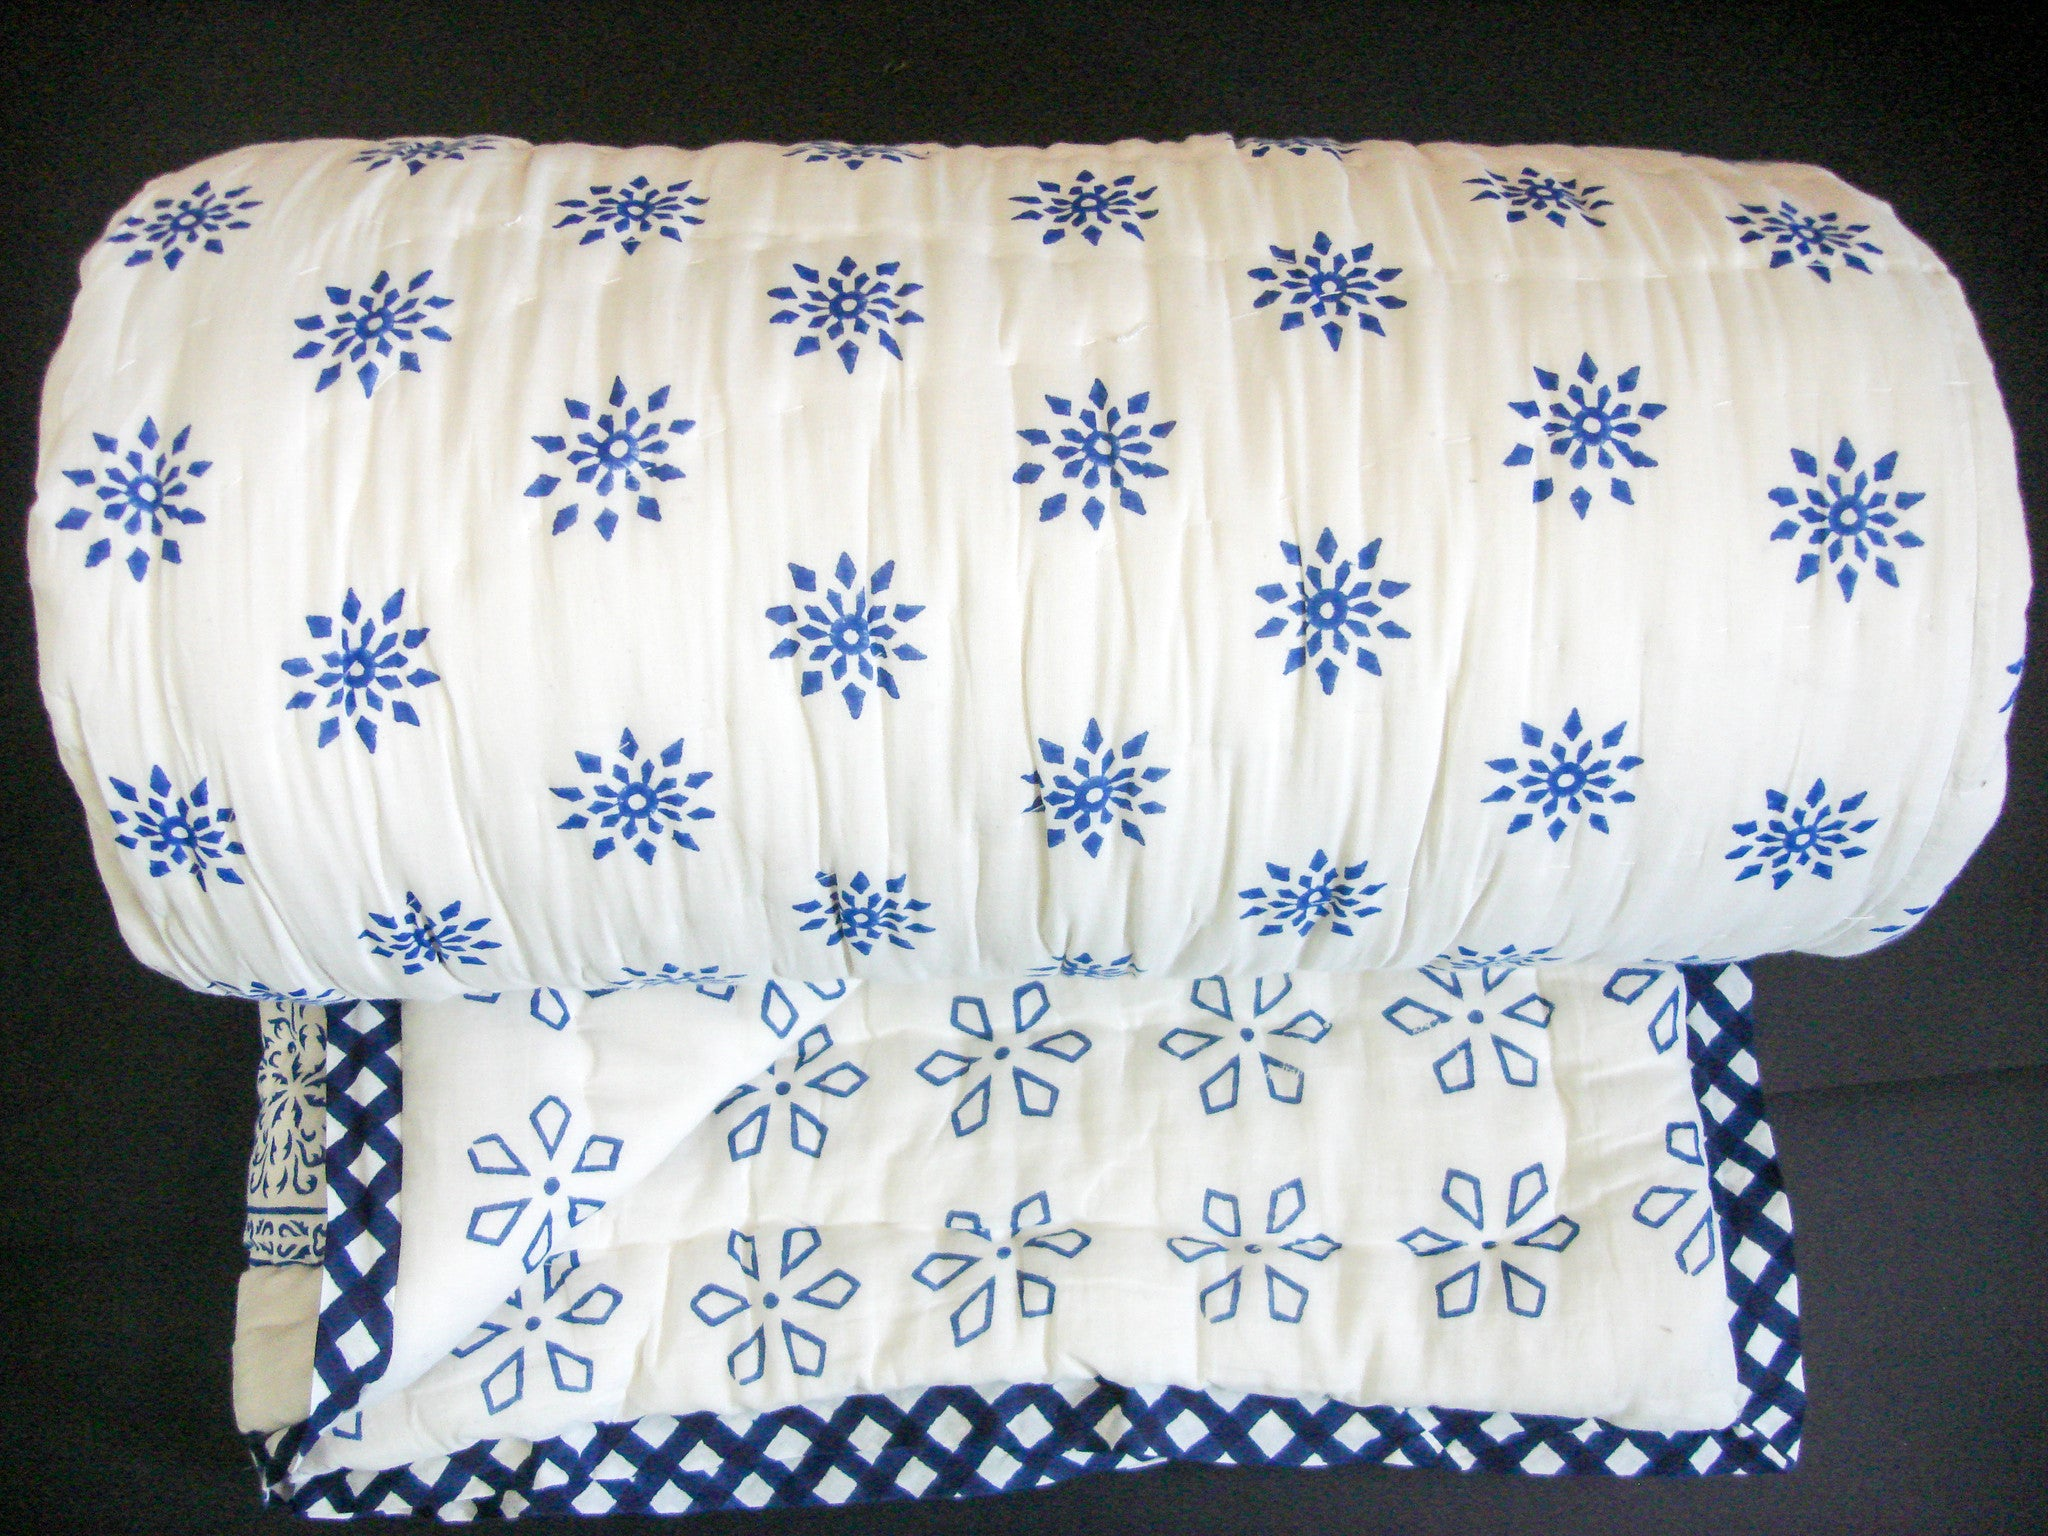 QBP 171 - 100% Handmade Cotton Queen Quilt - Blue Flower Blocks - Pentagon Crafts